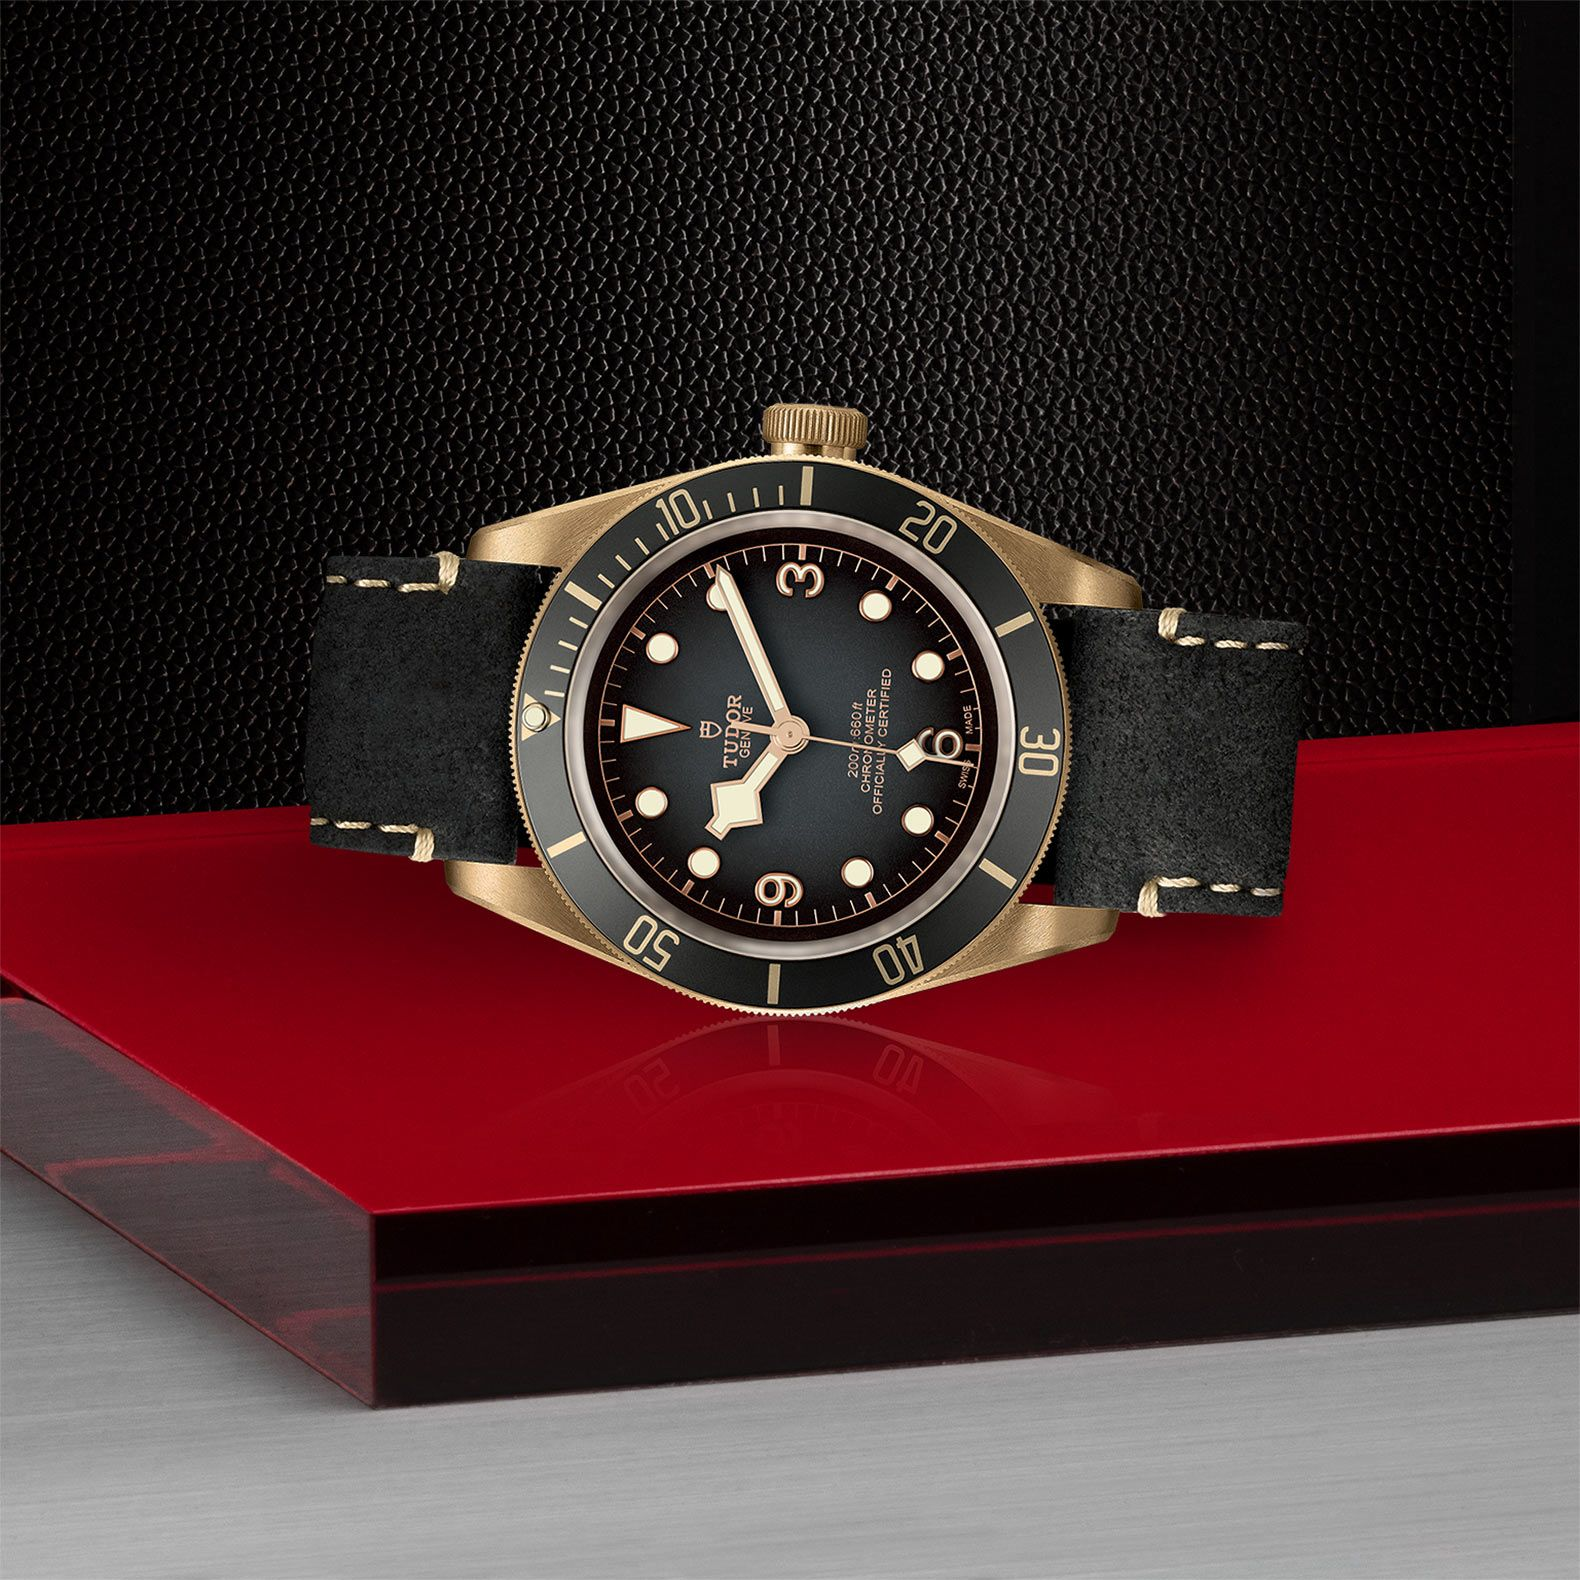 BLACK BAY BRONZE 79250BA - 0001